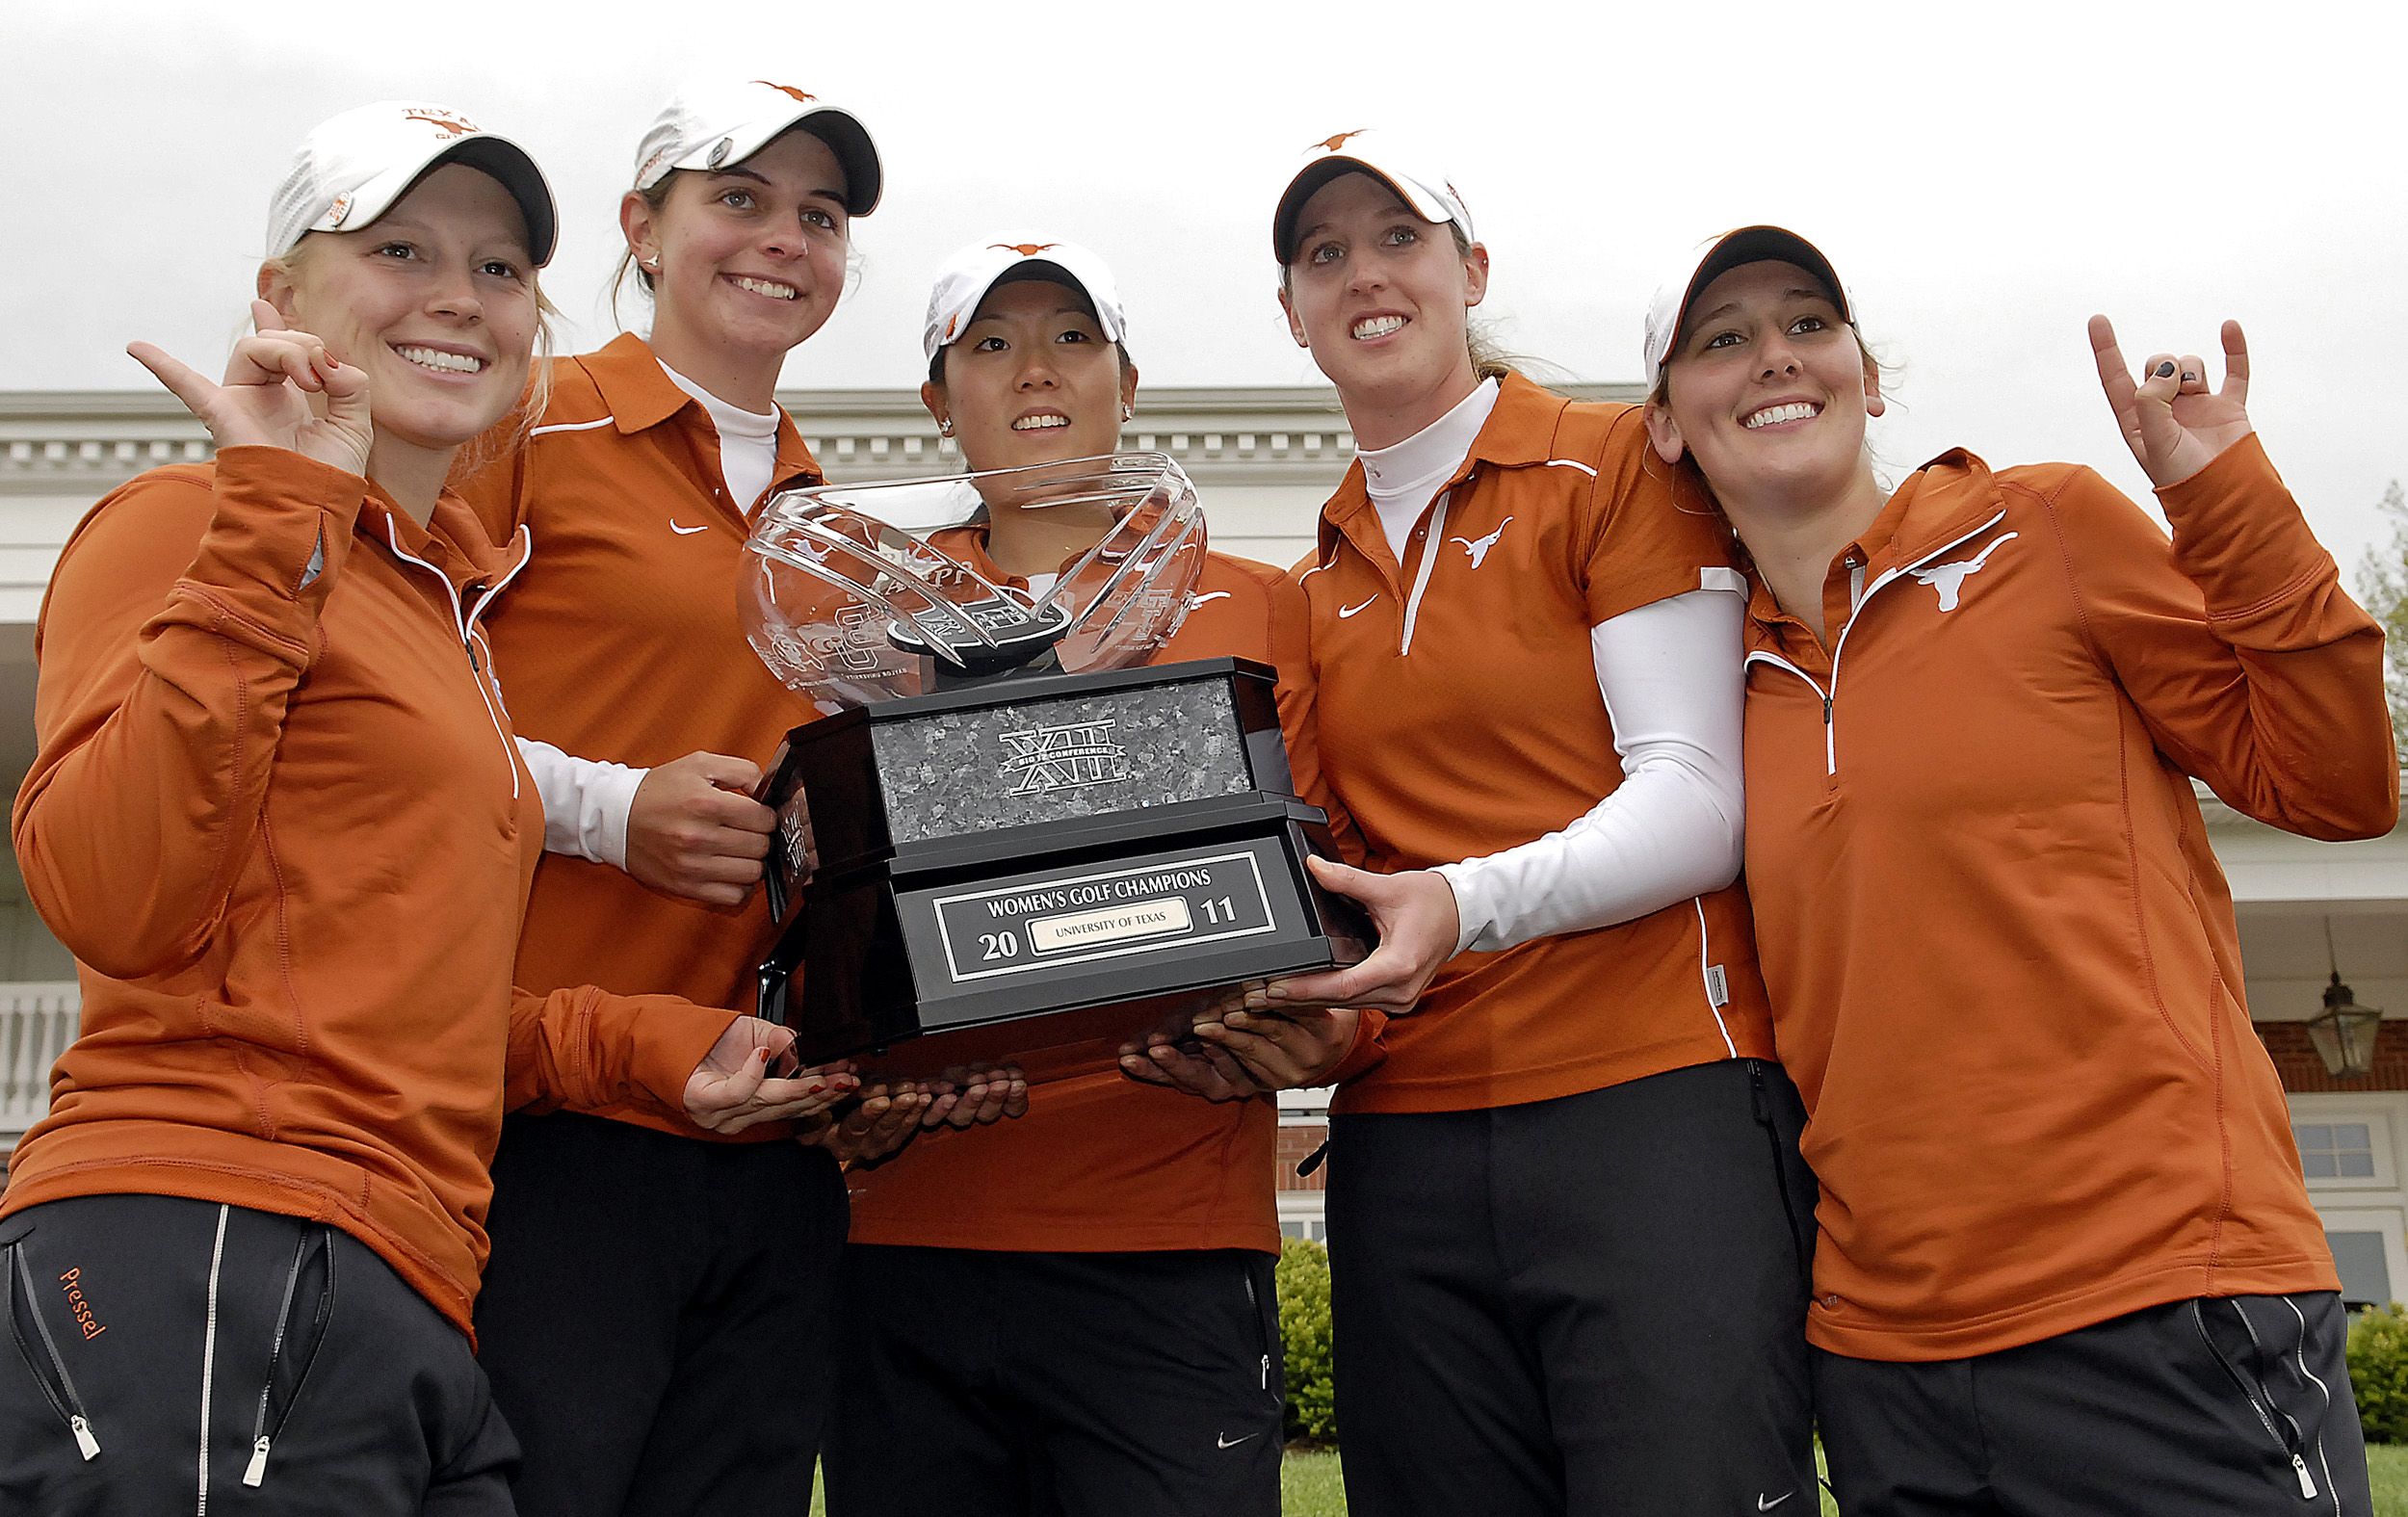 Texas won its first Big 12 Conference Championship since 2004.